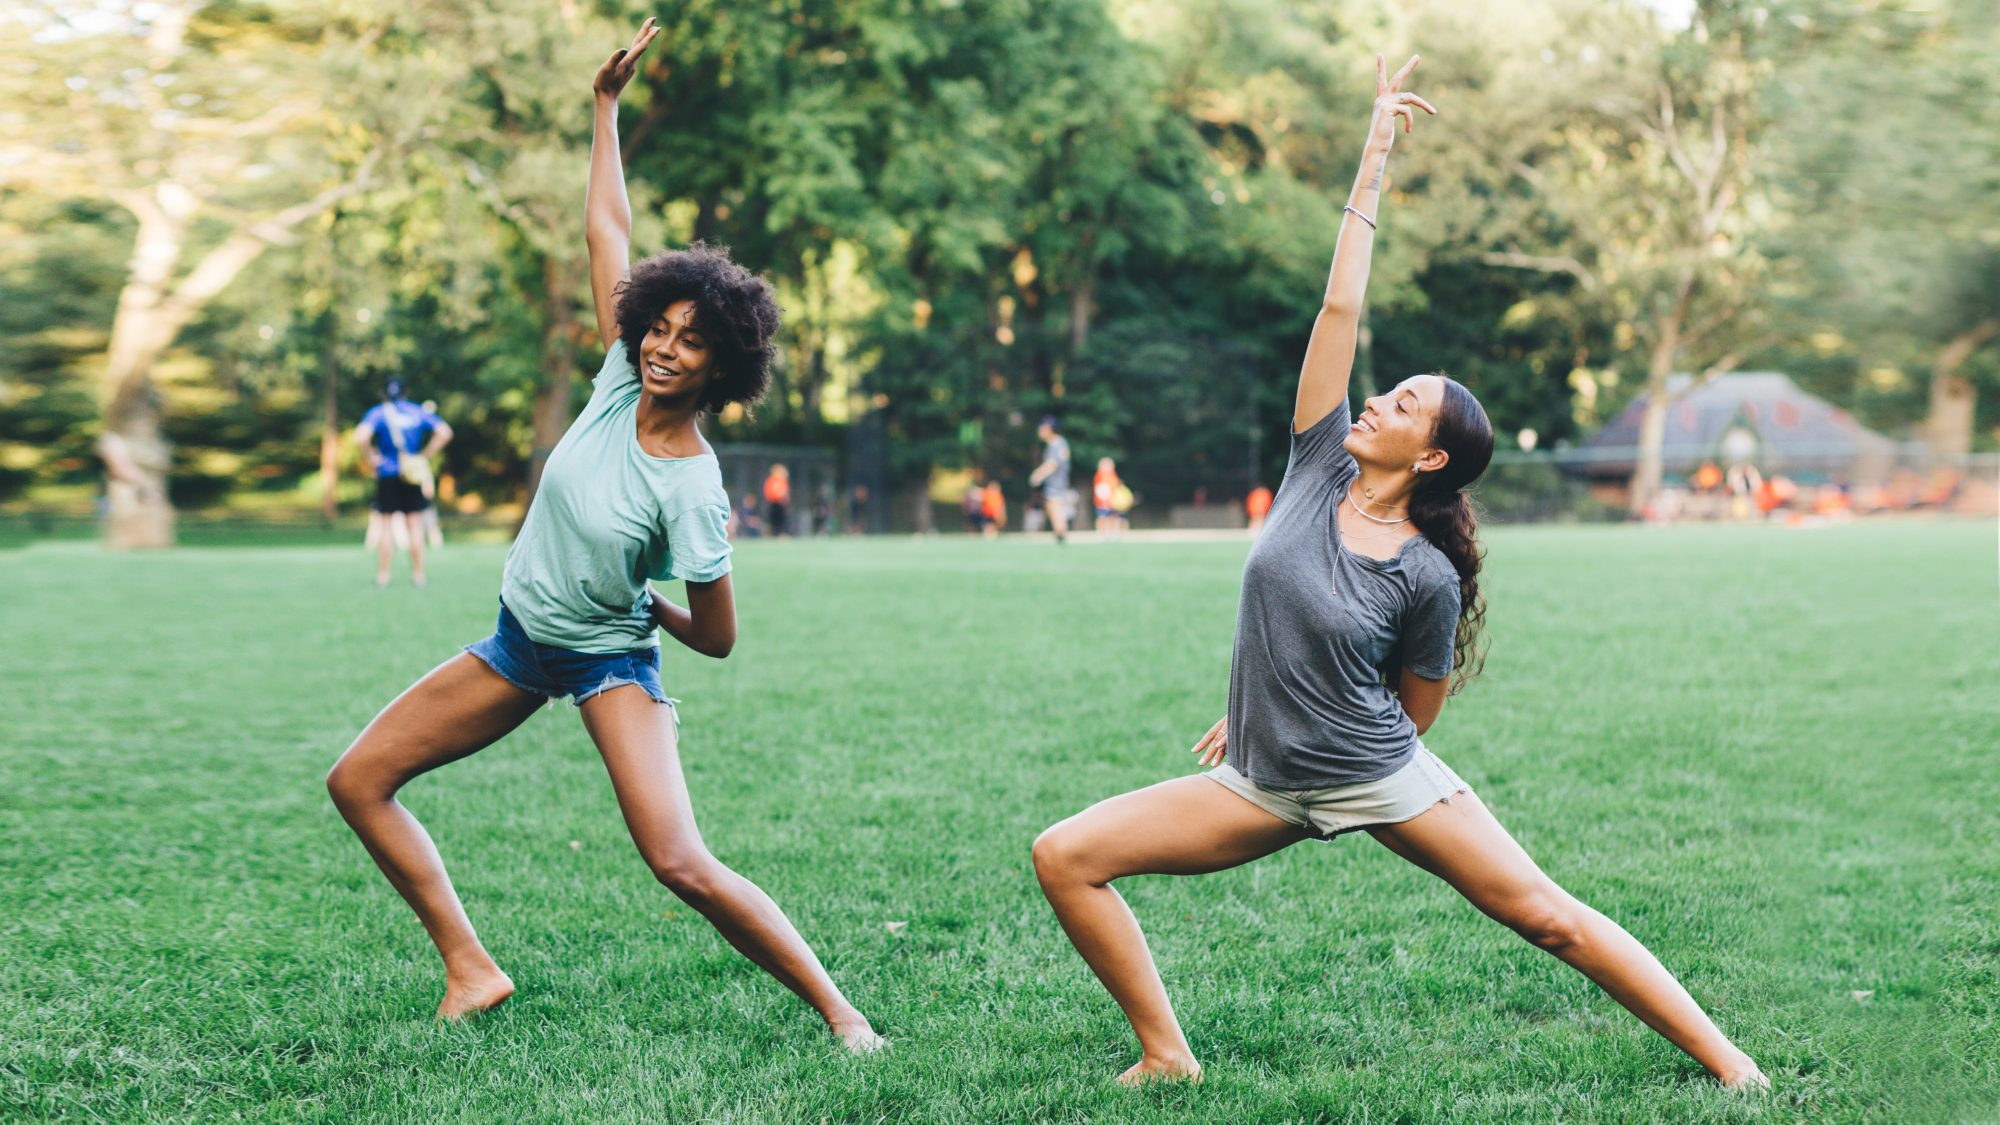 Two women doing yoga outside in a park